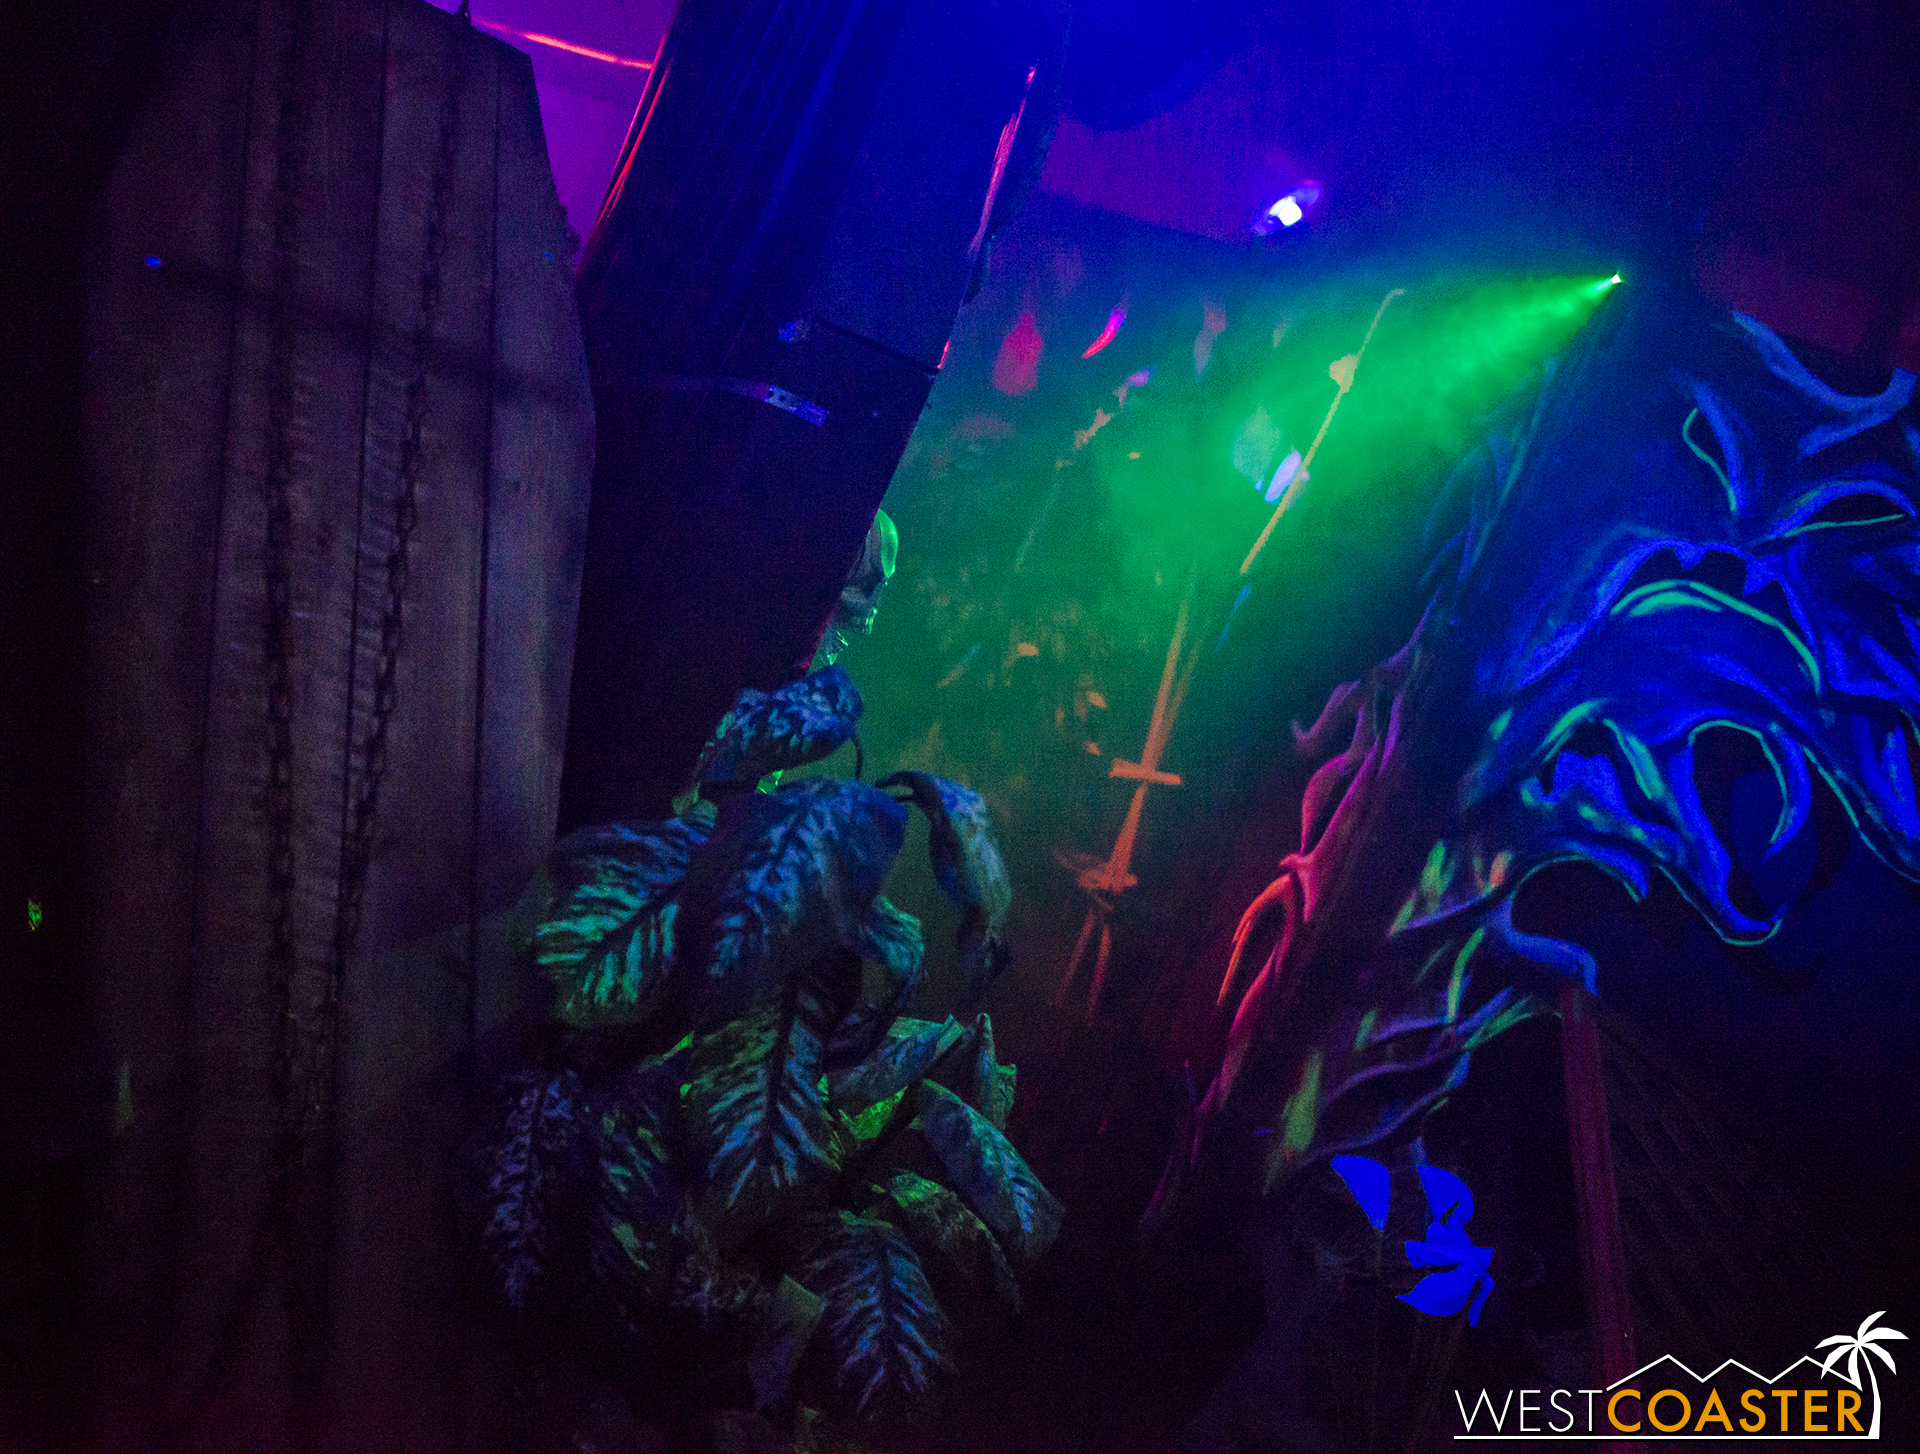 Black light and glowing paint are heavily employed.